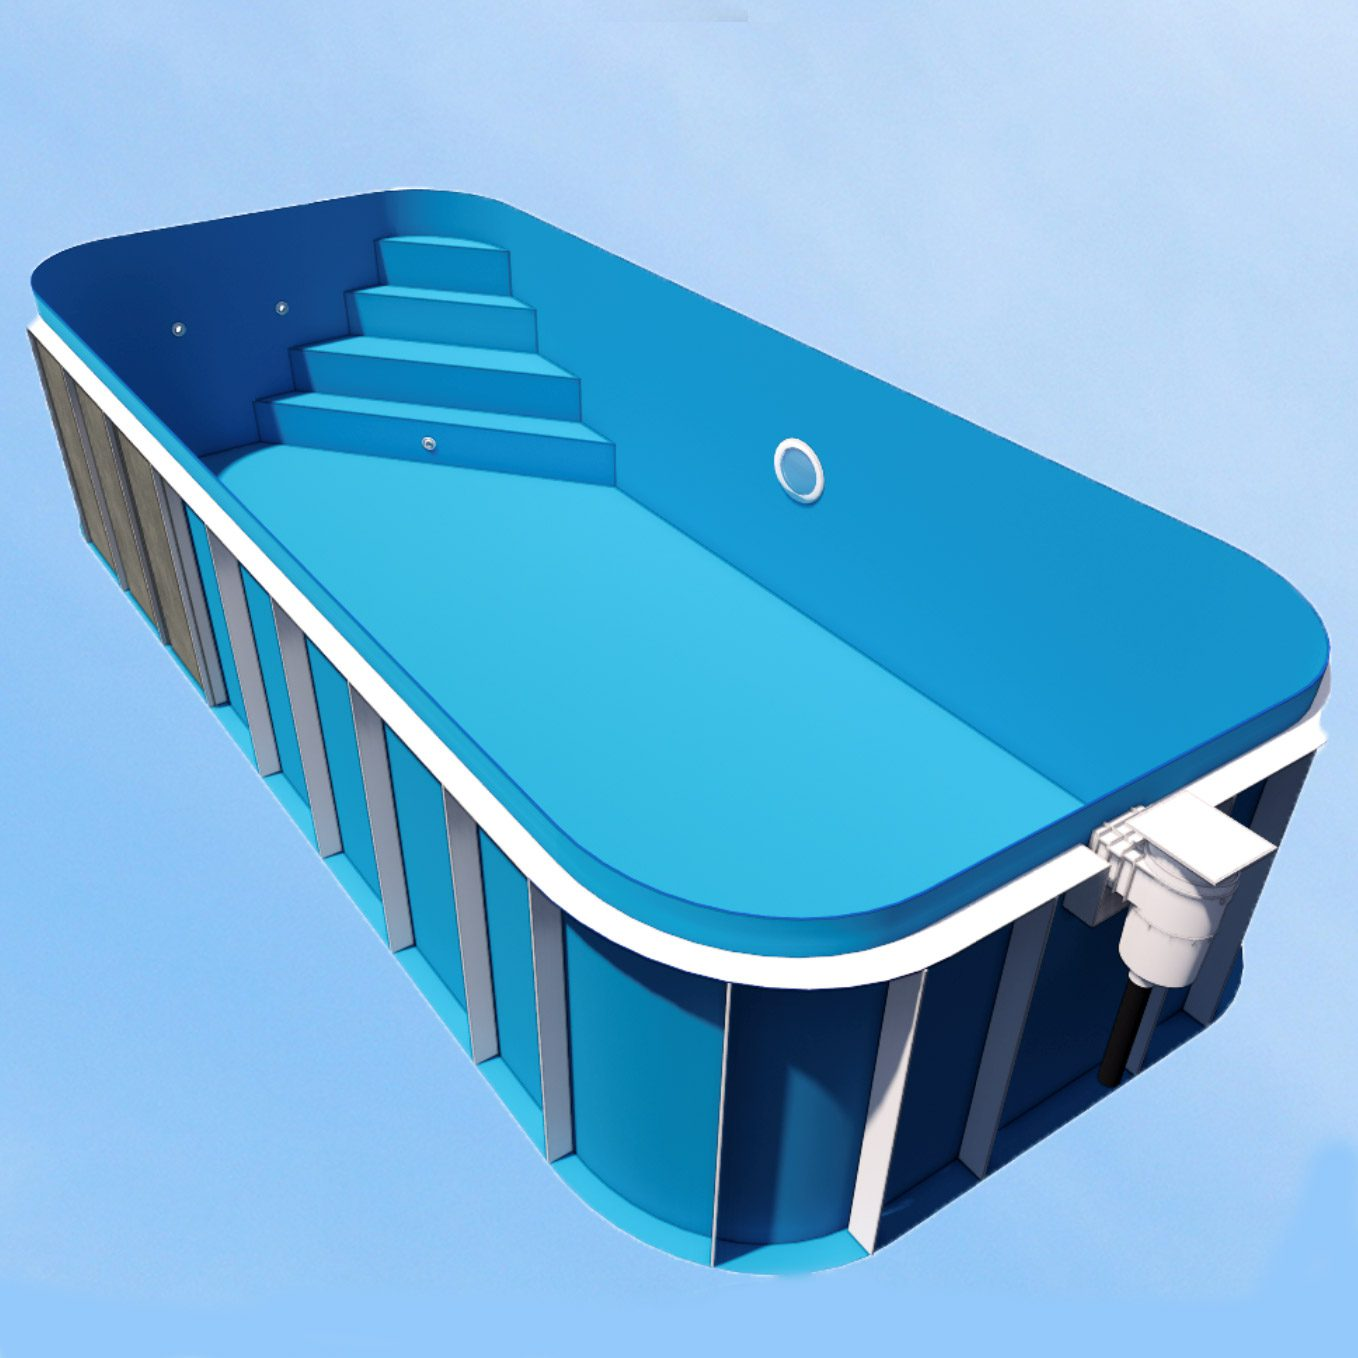 Dura Polymer Rectangle Swimming Pool 6 X 3 X 1.5m